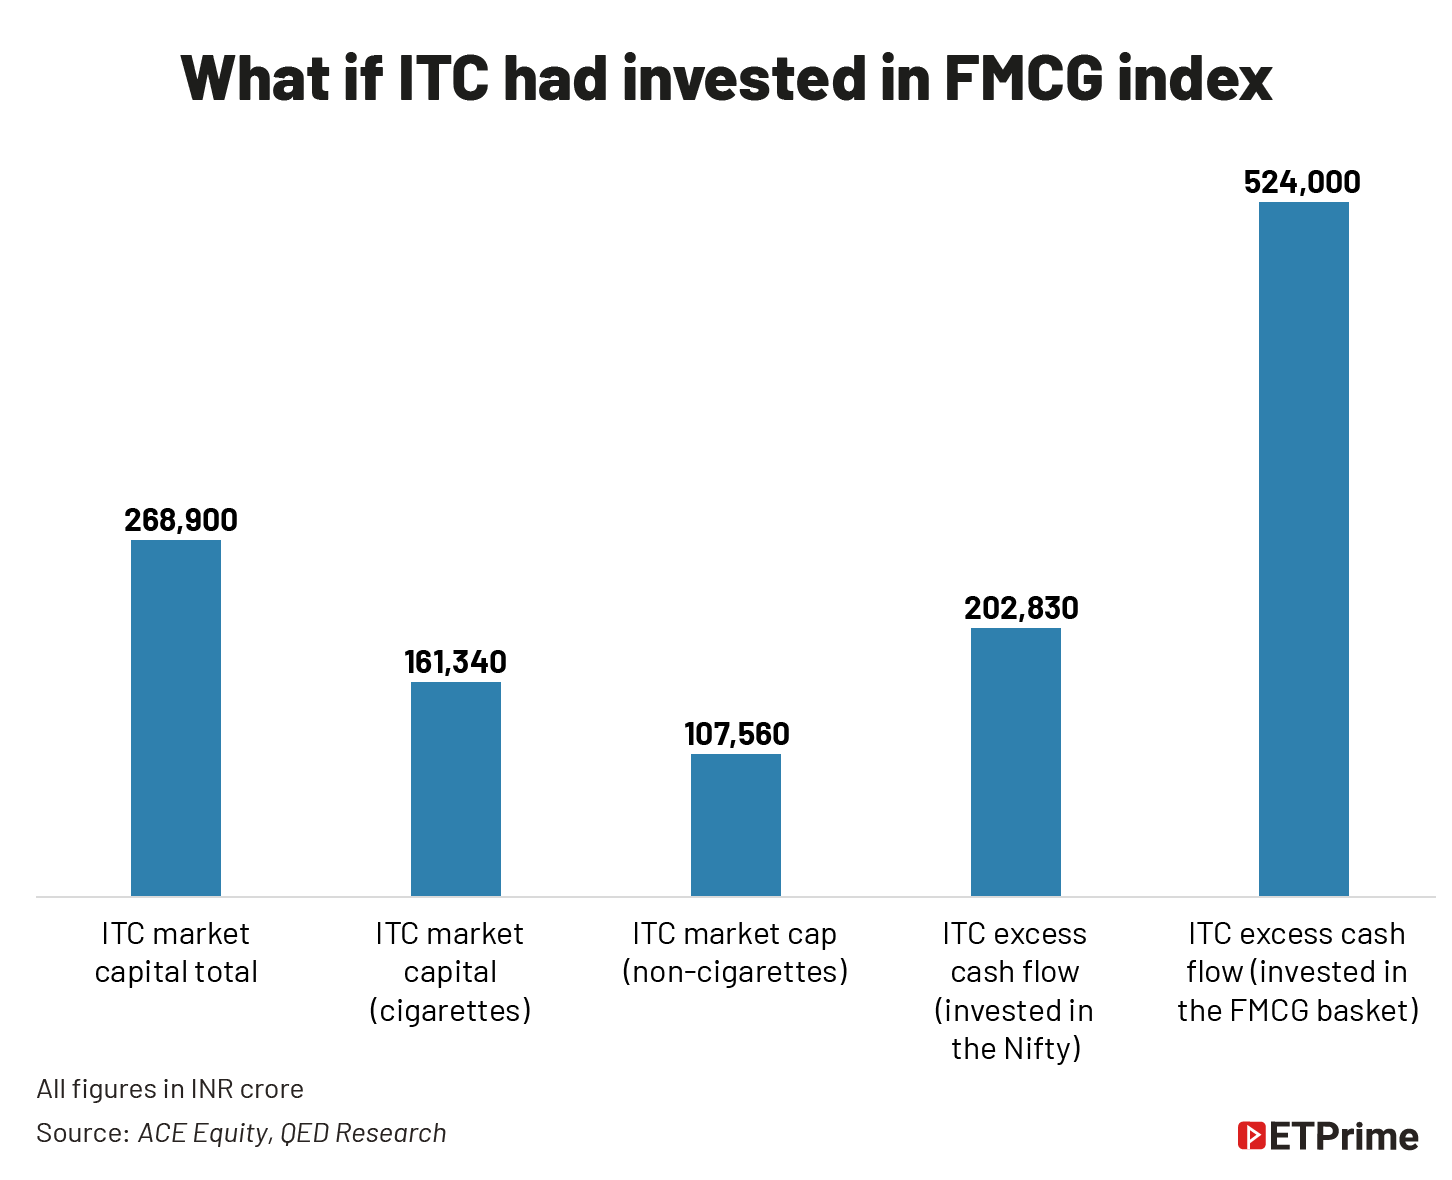 What if ITC had invested in FMCG index@2x